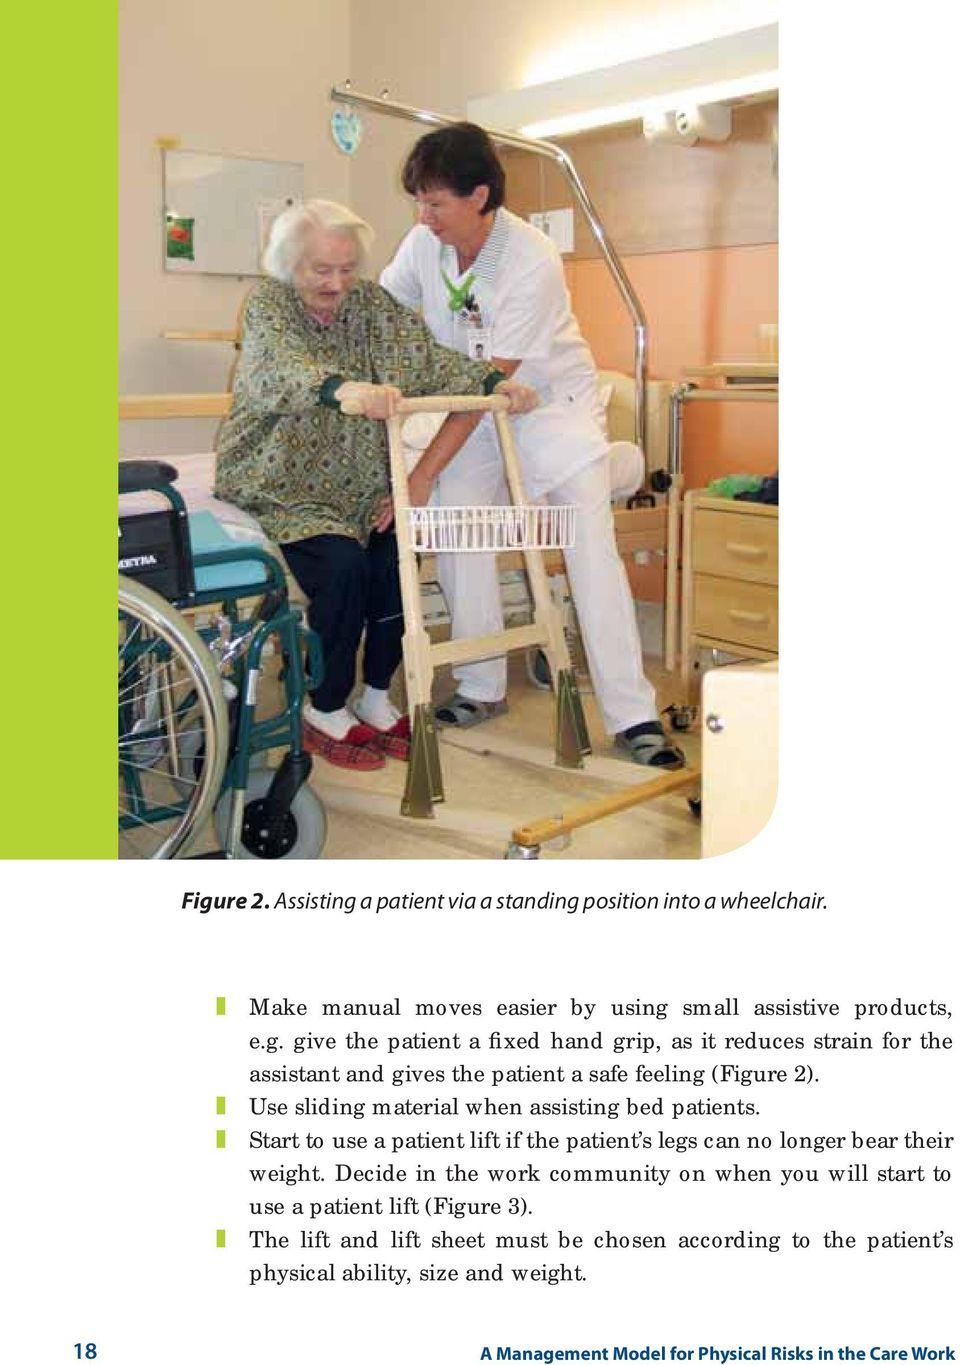 Decide in the work community on when you will start to use a patient lift (Figure 3).